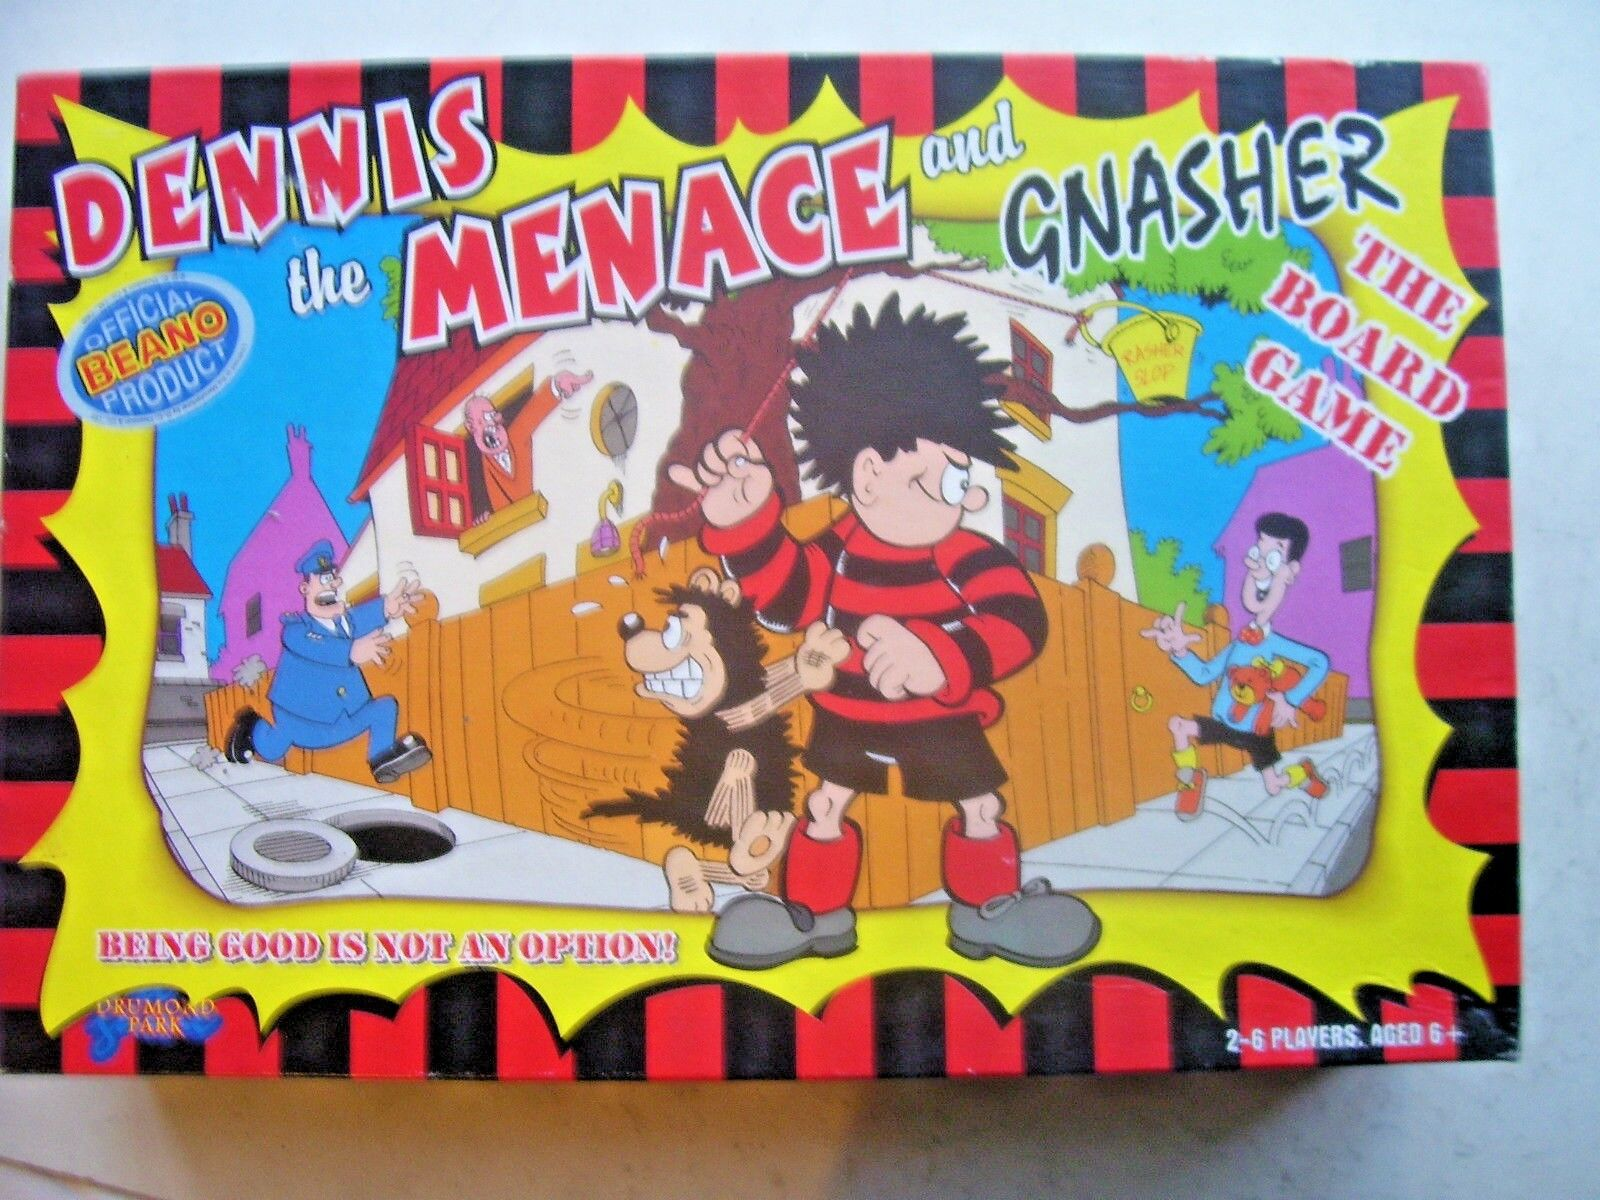 Dennis the Menace and Gnasher Game By Drumond Park 1998